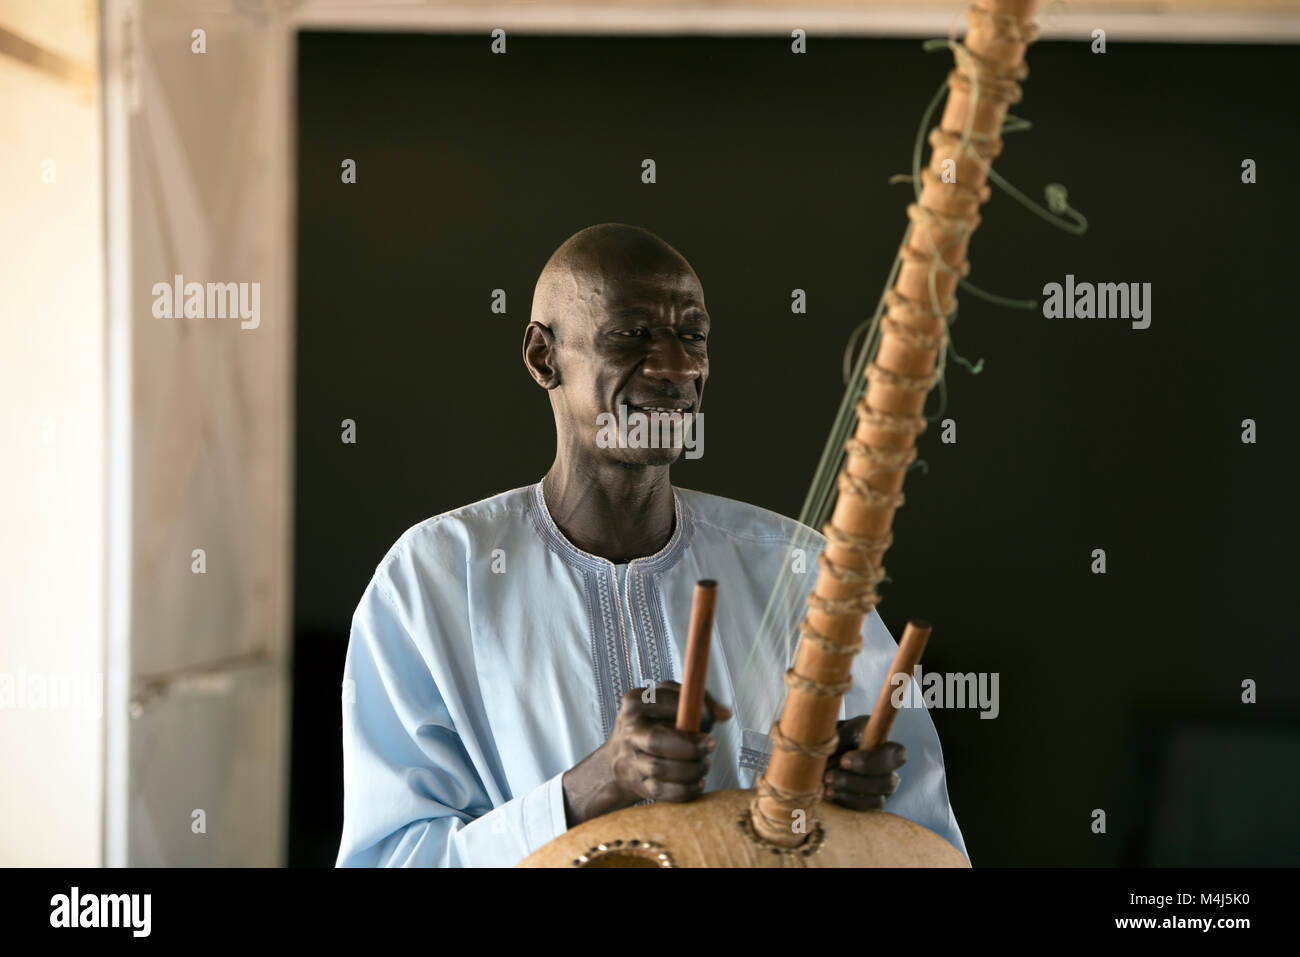 An ethnic Mandinka tribesman plays a traditional musical instrument in Jufureh, The Gambia, West Africa. - Stock Image